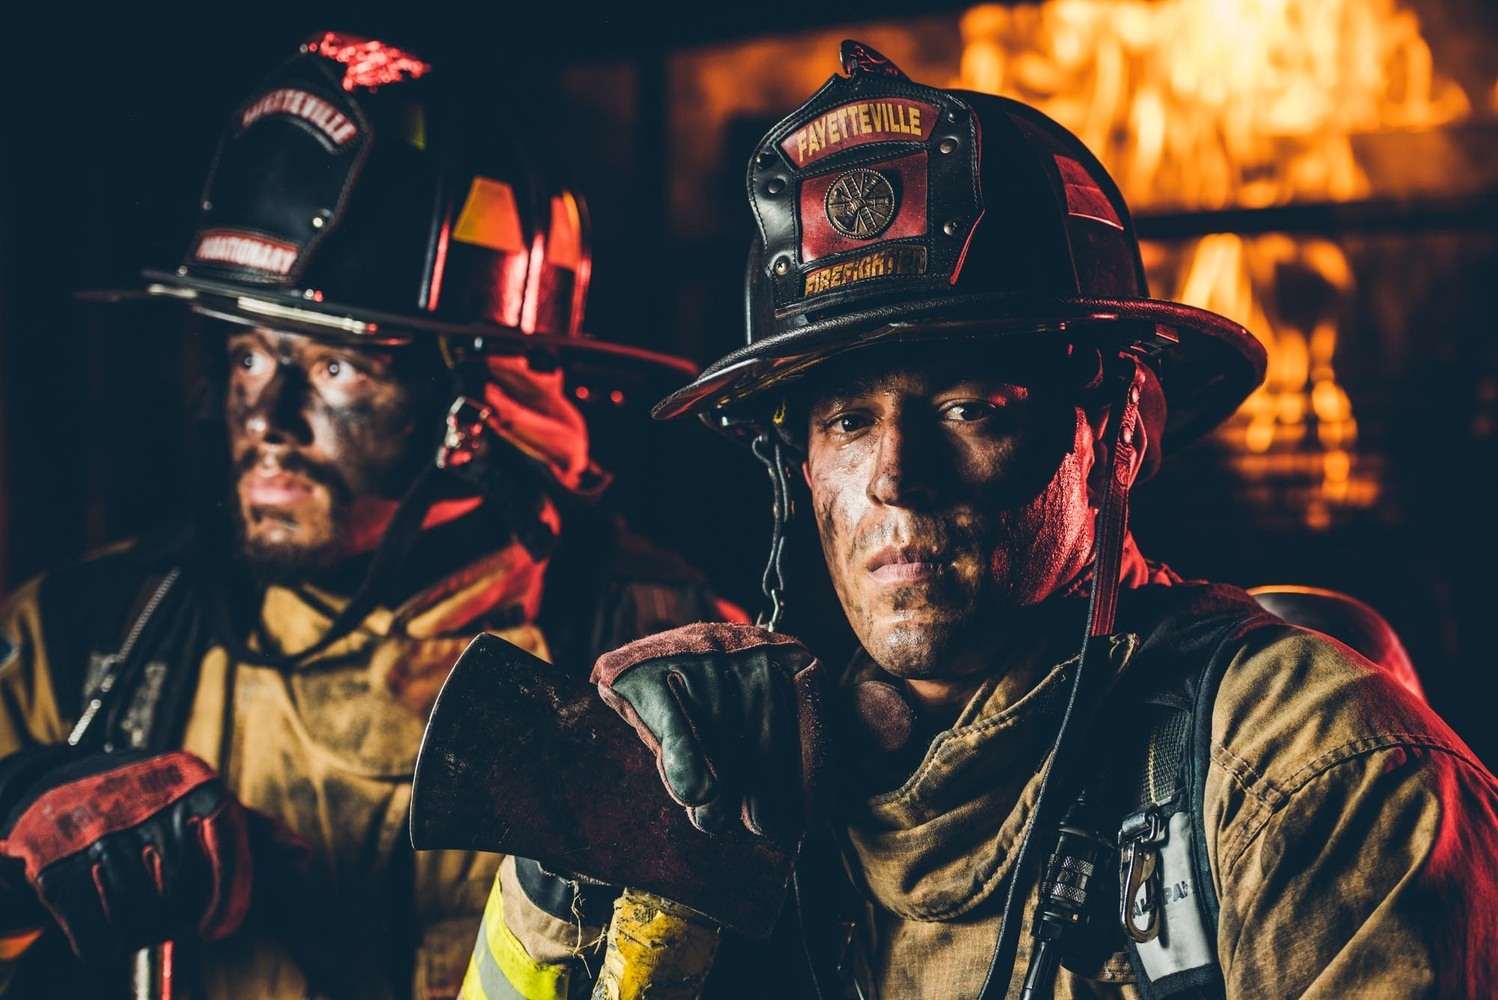 I created some images of firefighters for a local non-profit that organizes a half marathon that benefits local firefighter groups. It was smoky, and hot, and challenging. One beauty dish and one red-gelled speedlight and about a minute or two to make an